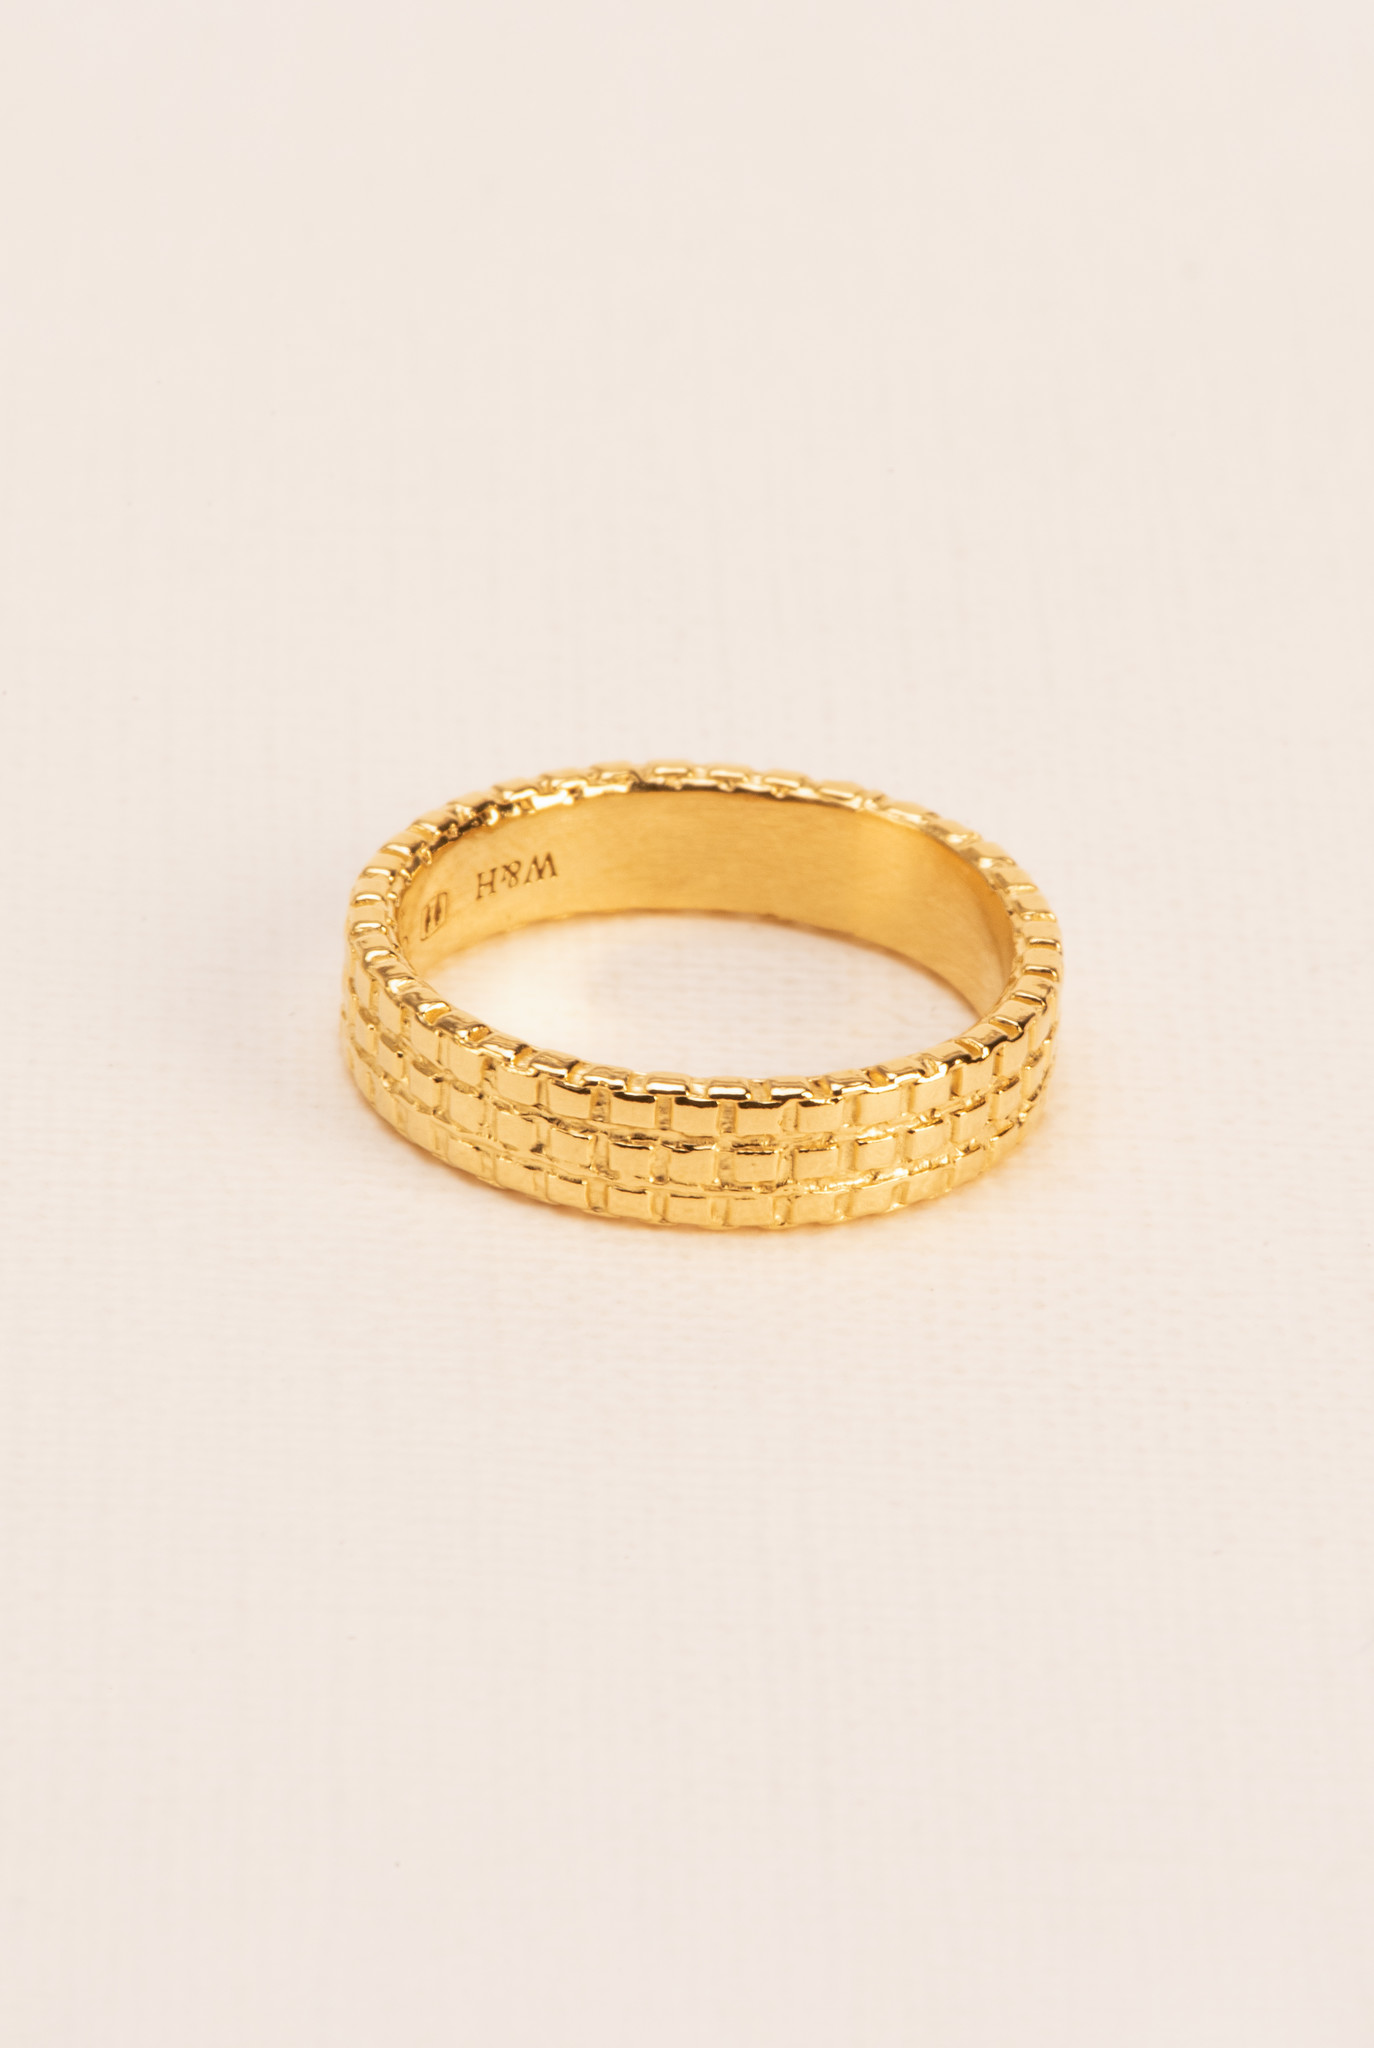 Ring with chain texture gold plated